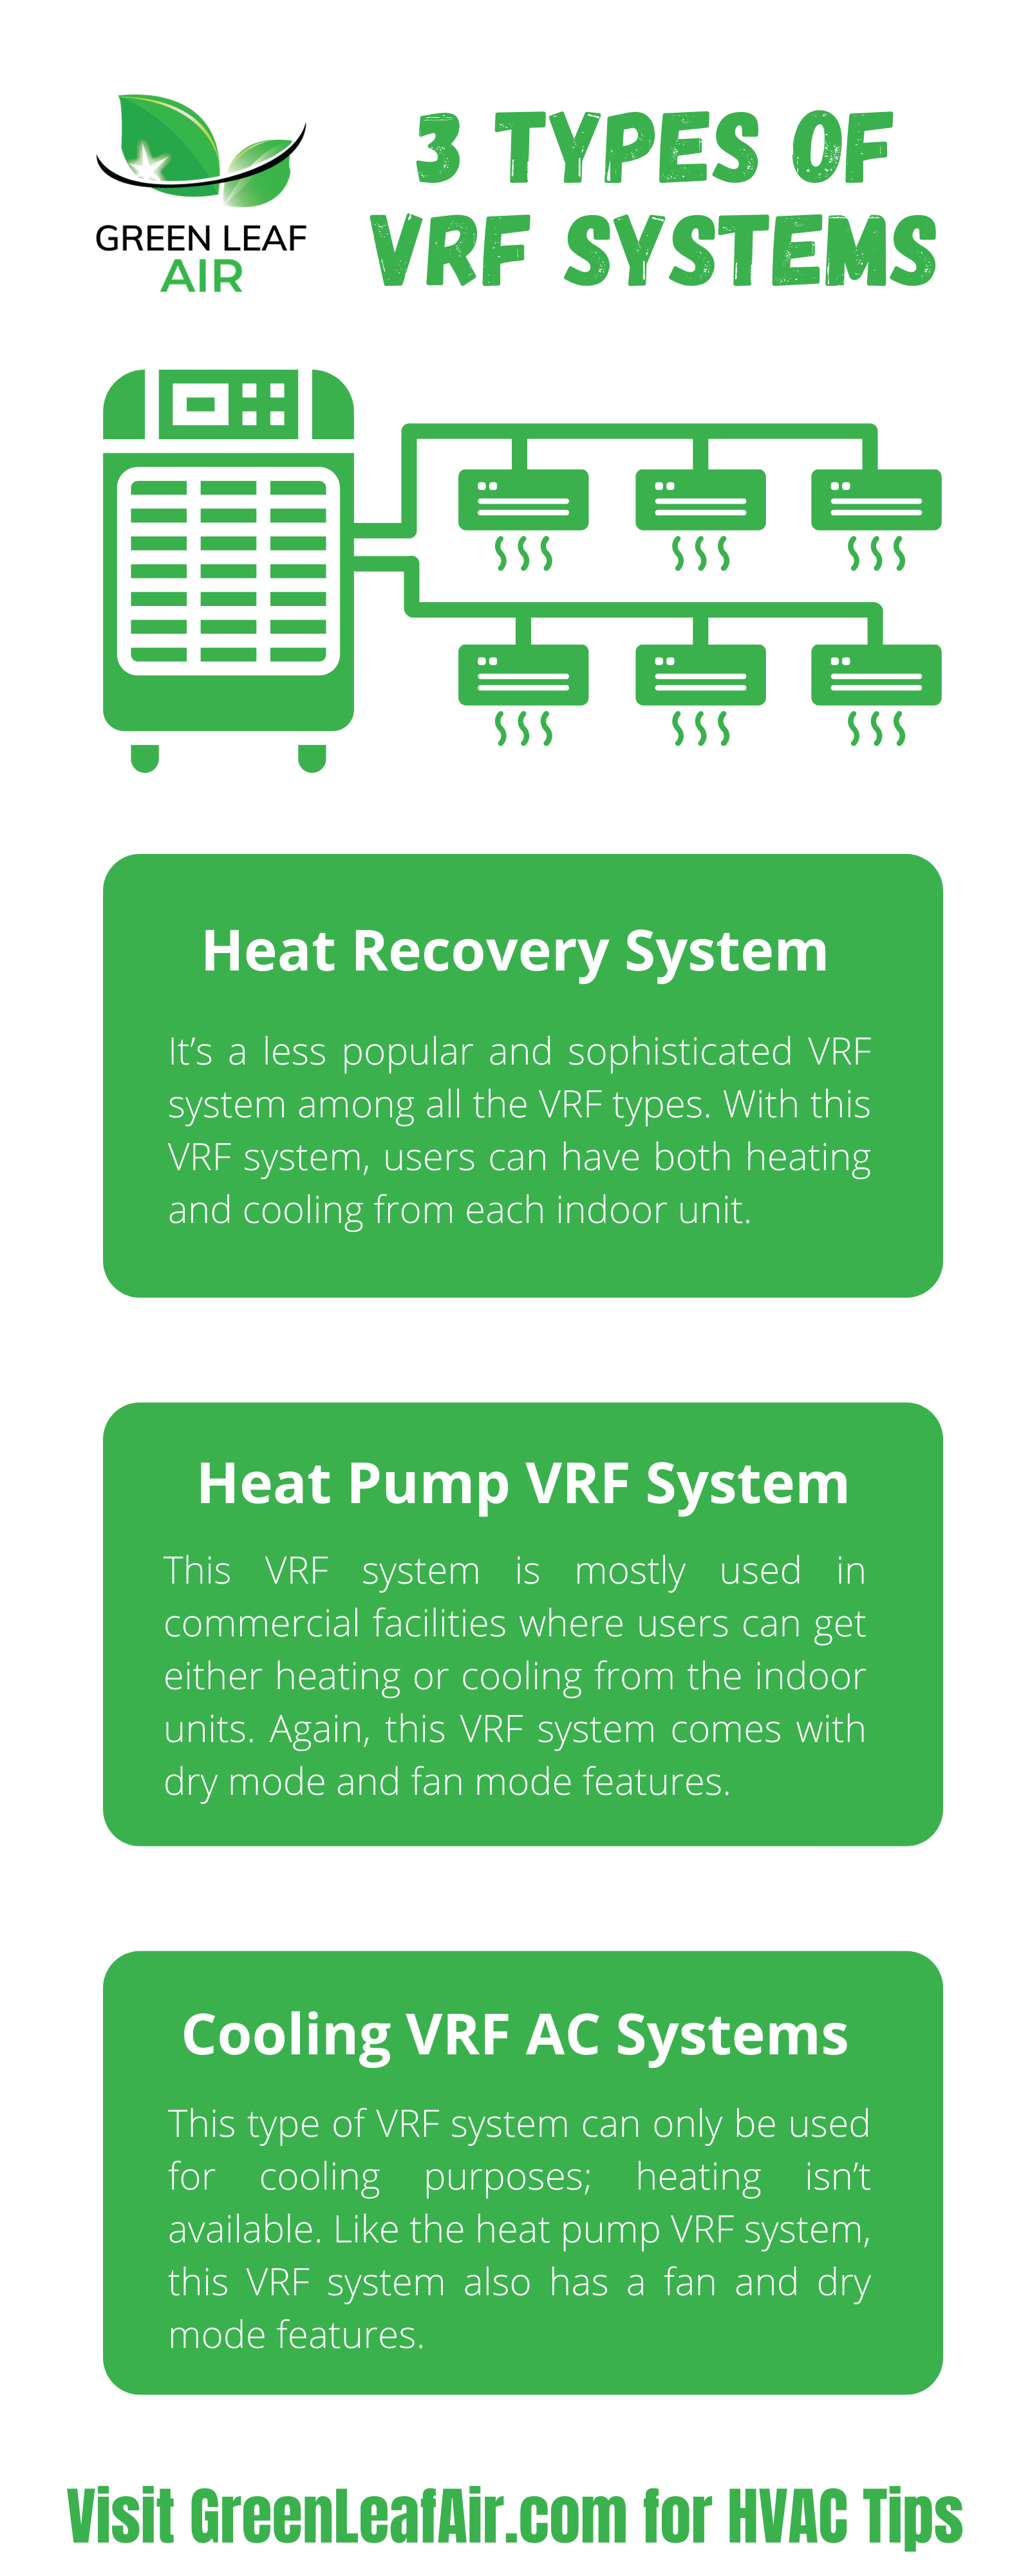 3 Types of VRF Systems